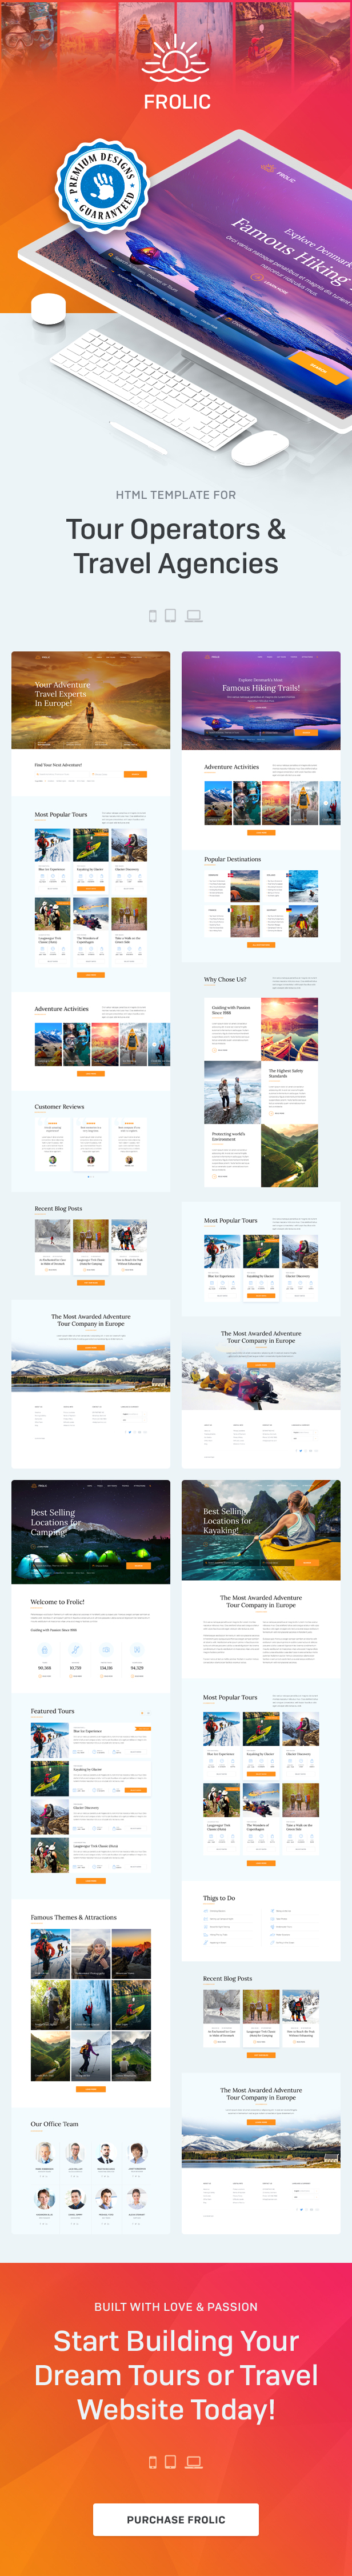 FROLIC - HTML Template for Tour Operators & Travel Agencies - 1